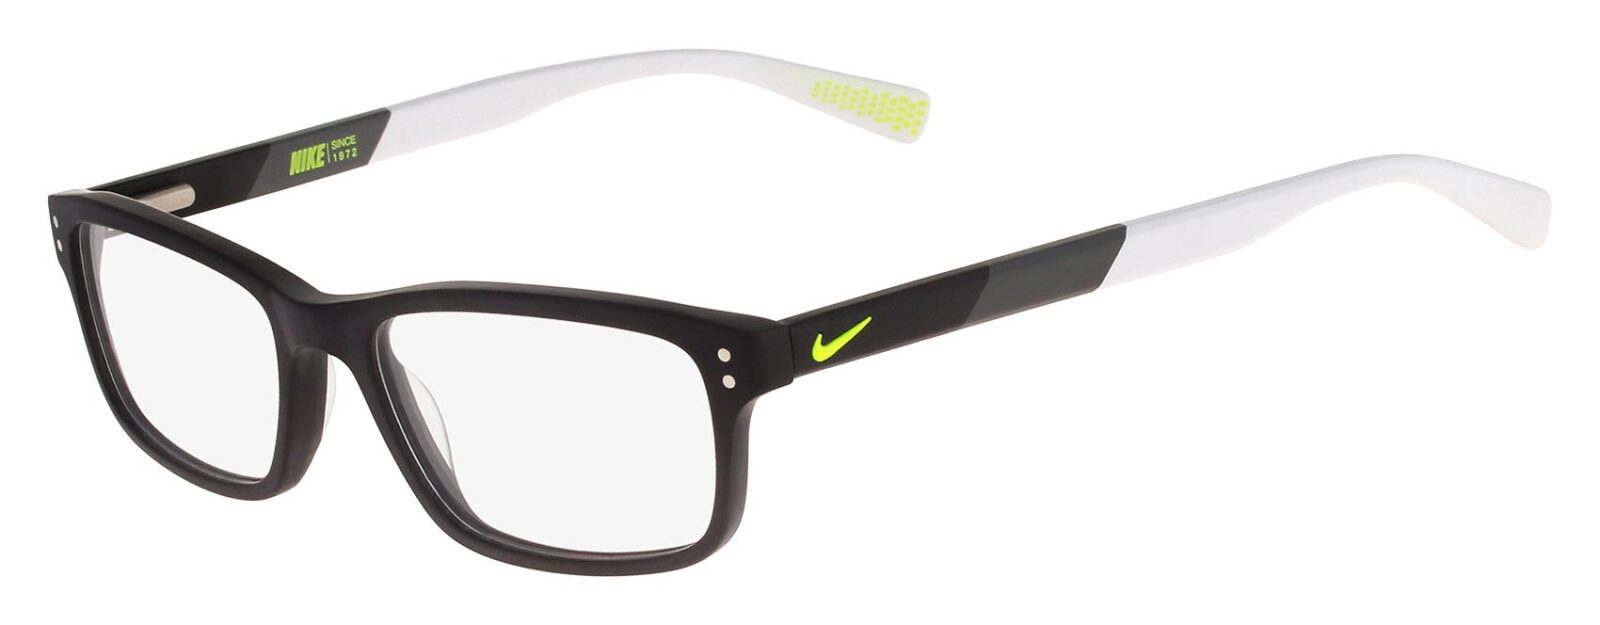 Nike 7237 Lead Glasses